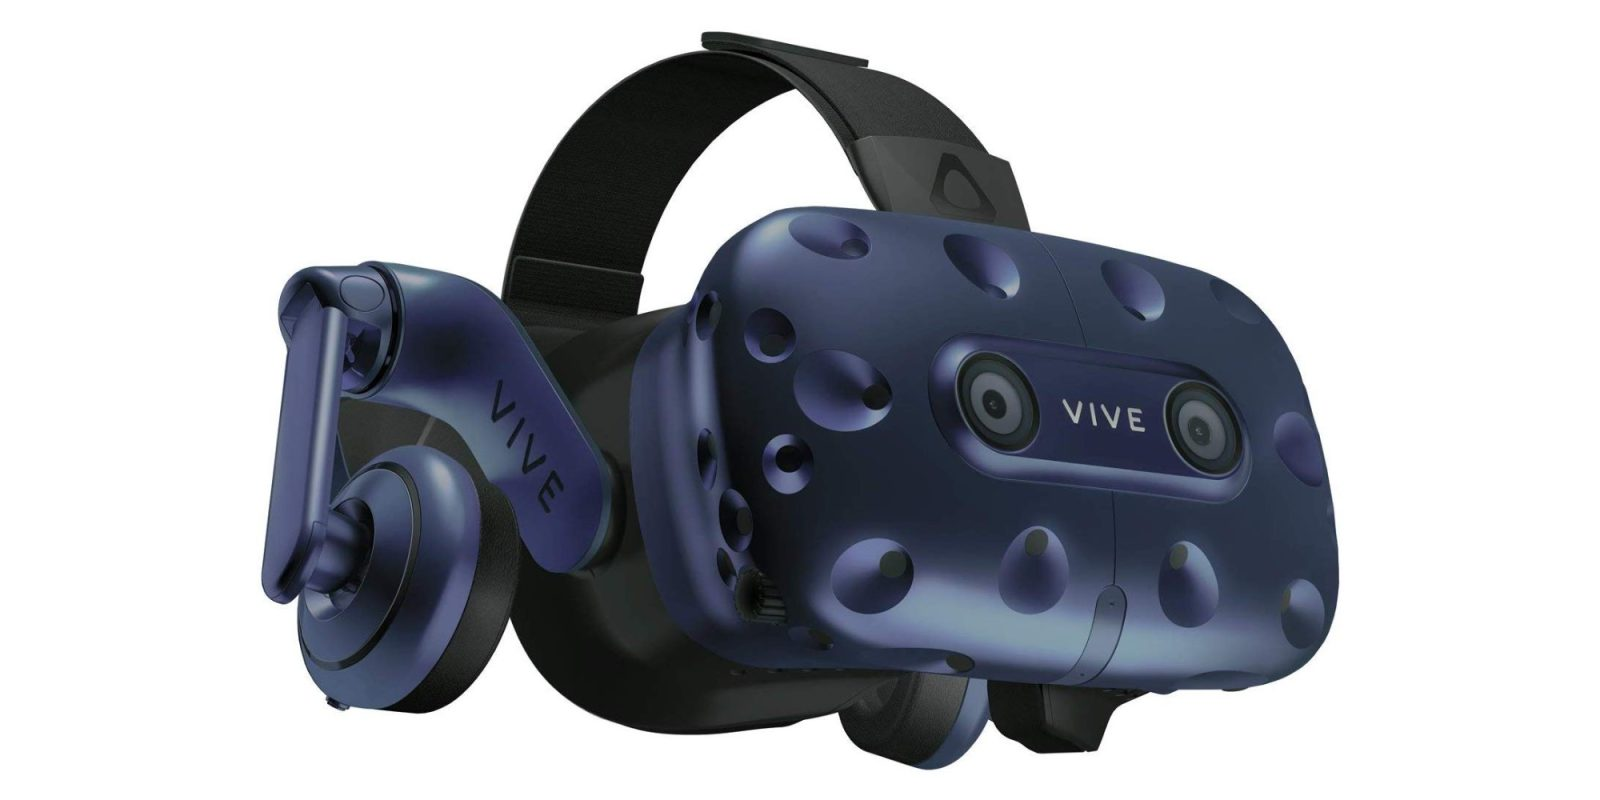 A $199 discount brings HTC's VIVE Pro VR Headset to its second-best price yet